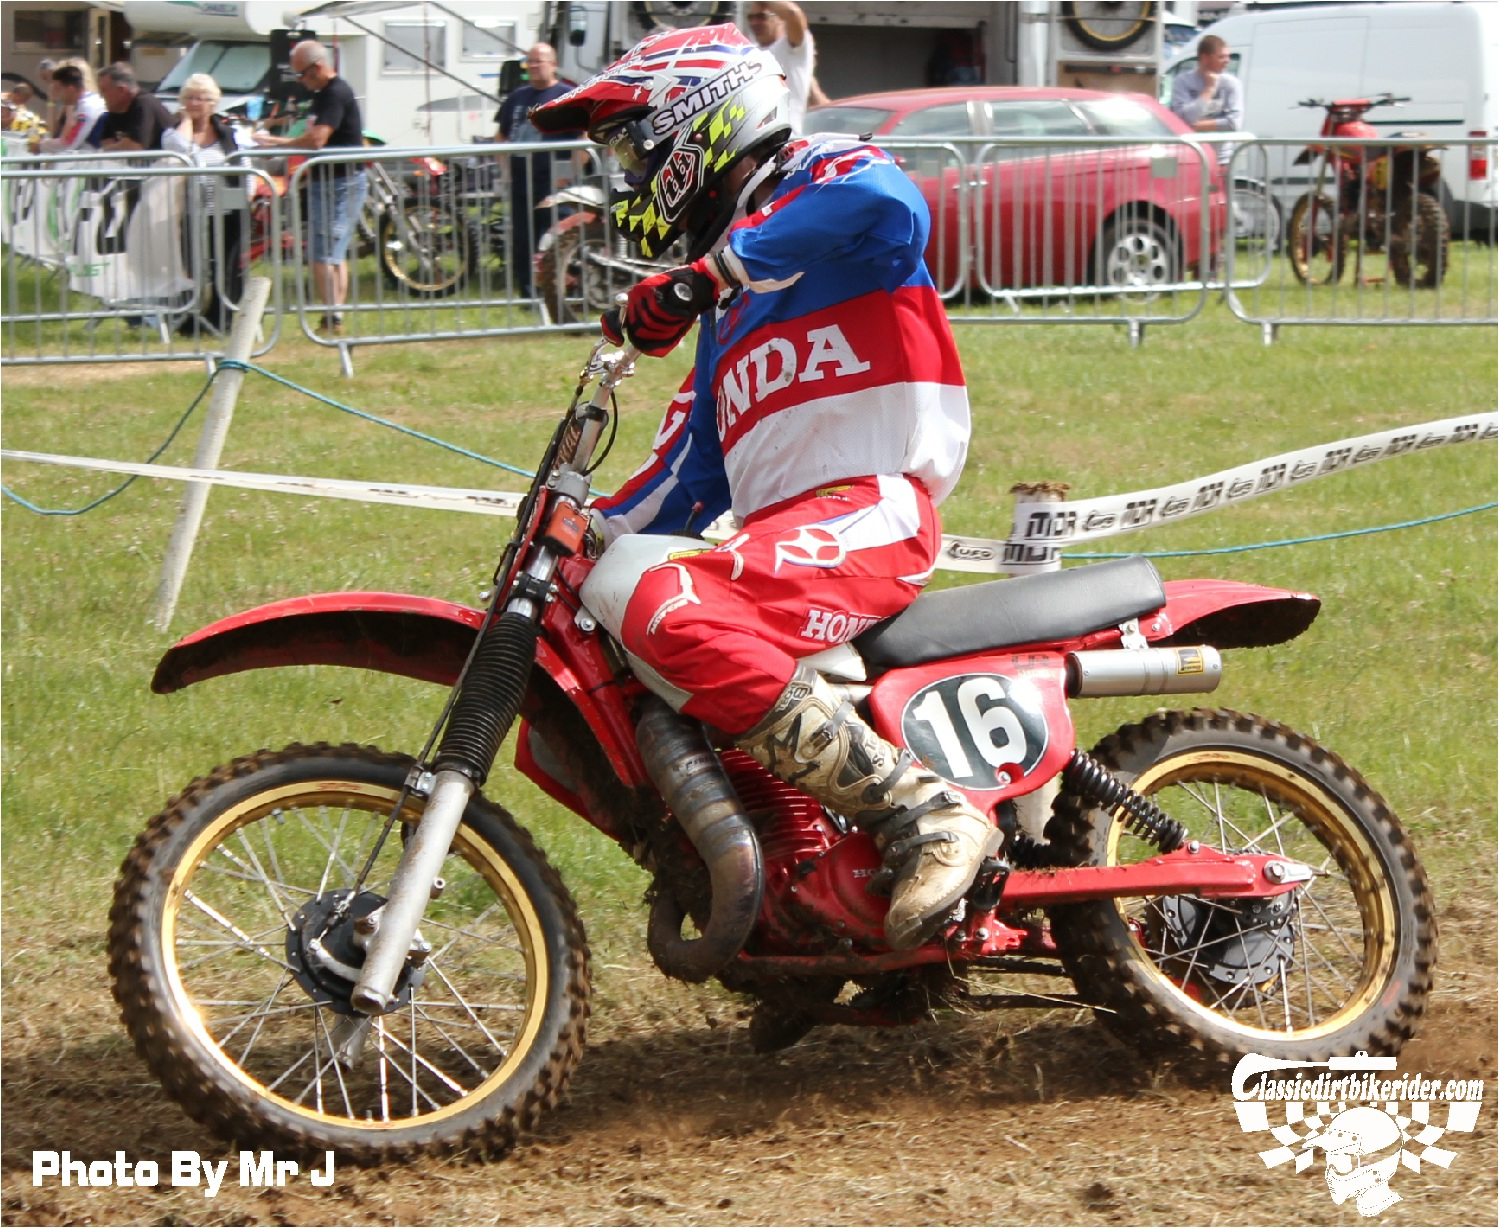 king of the castle 2015 photos Farleigh Castle twinshock motocross classicdirtbikerider.com 26